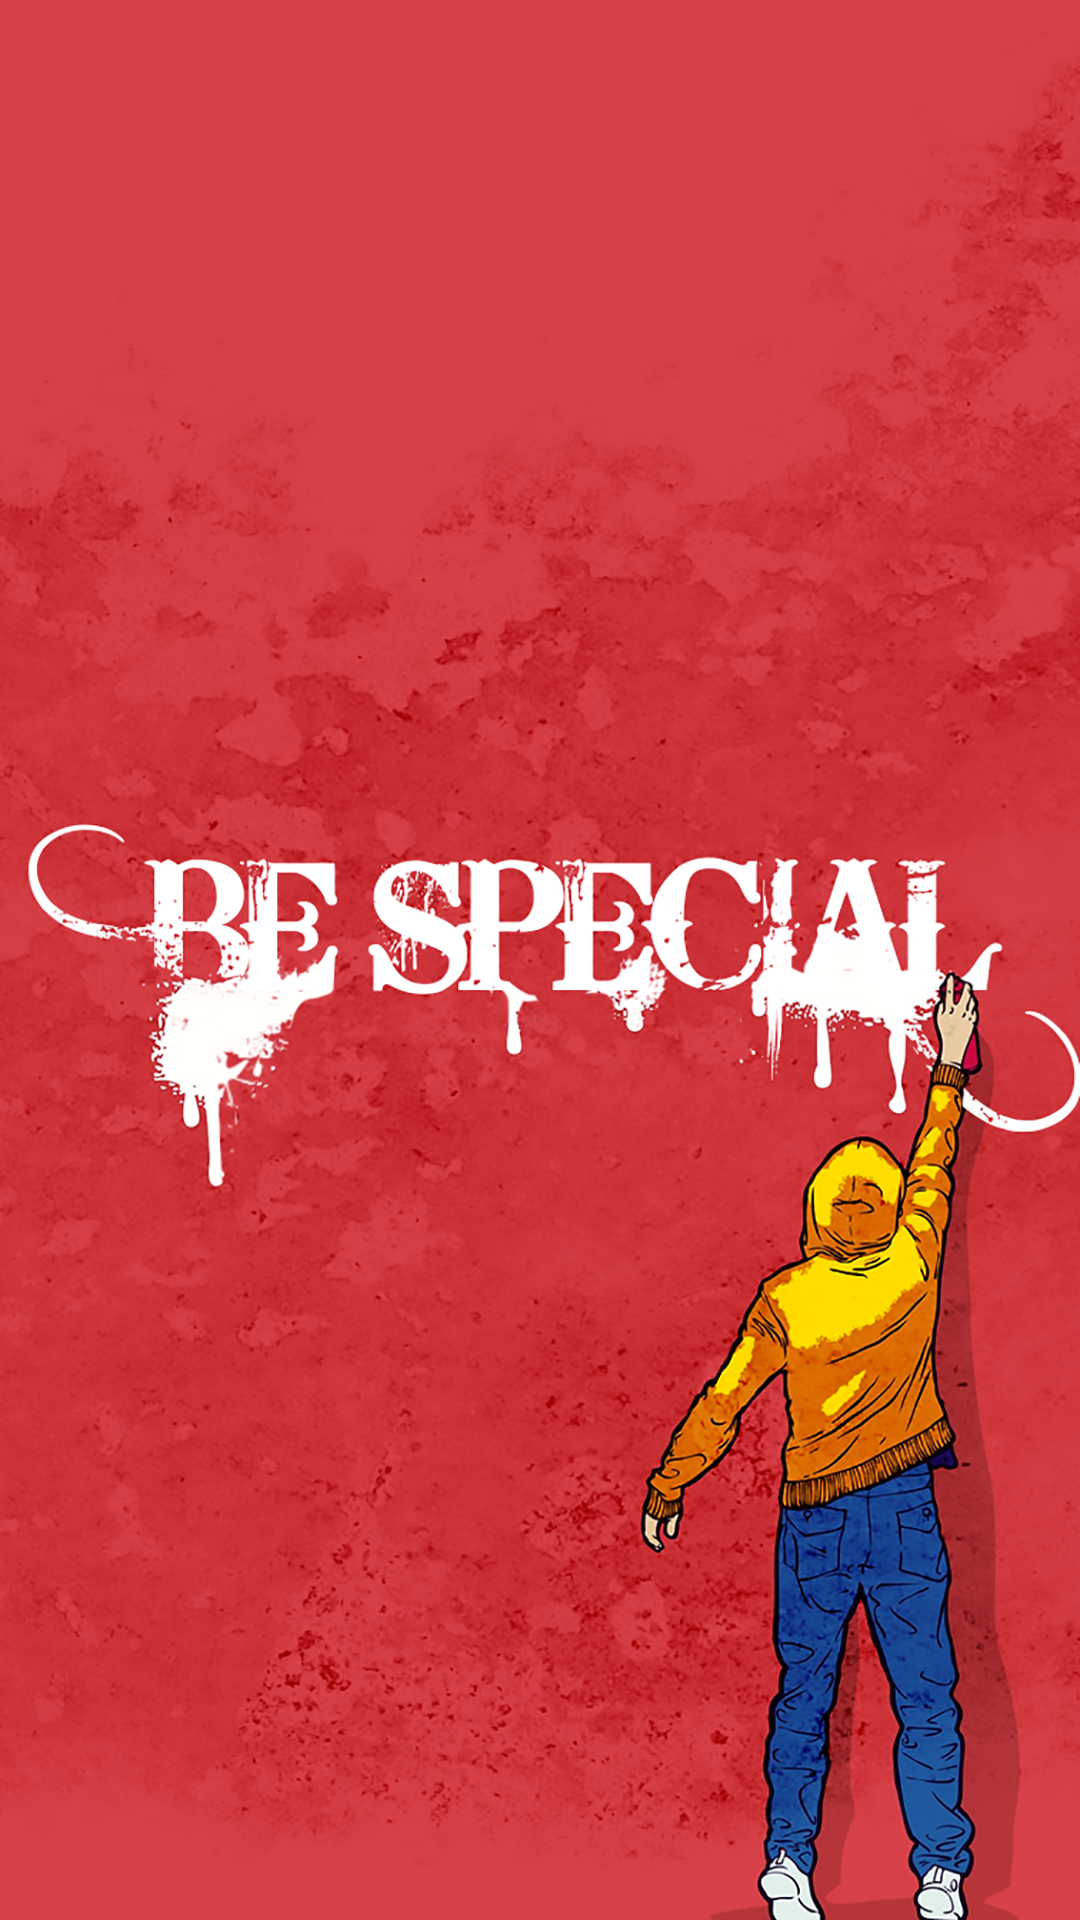 Art Creative Graffiti Walls Quotes Red Pink Guy HD IPhone 6 Plus Wallpaper